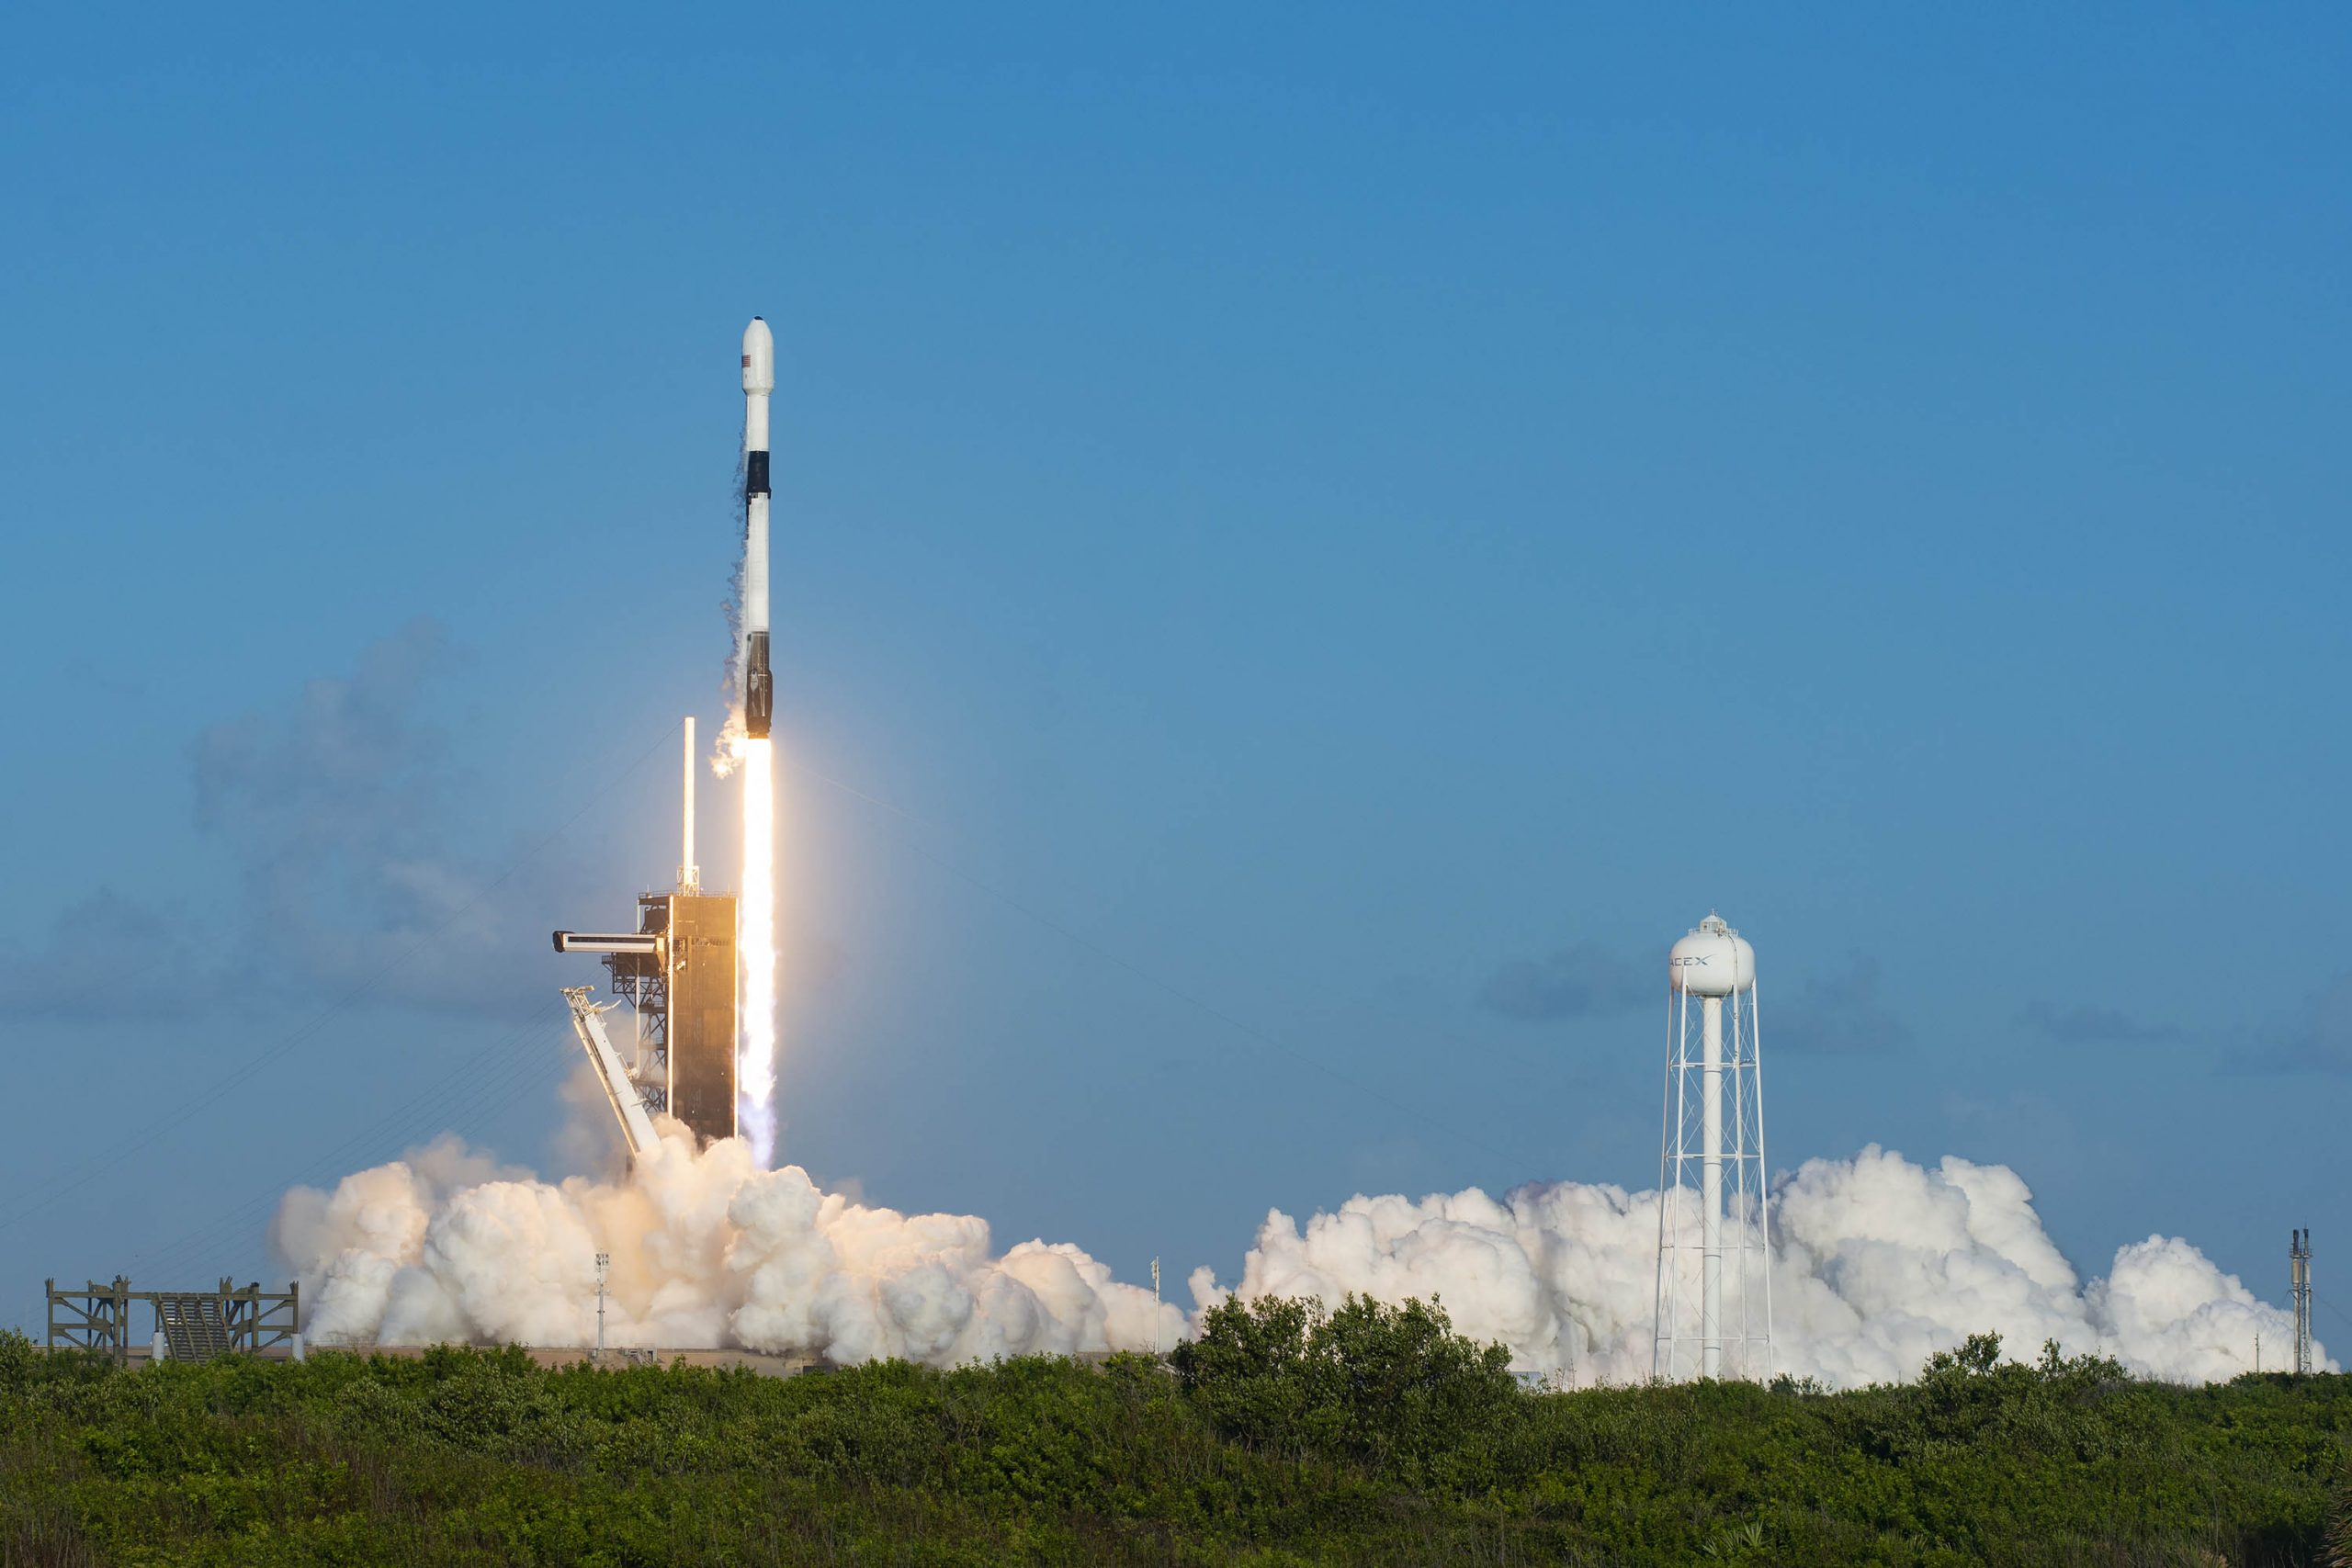 Elon Musk's SpaceX gets CRTC application approval for Starlink satellite internet